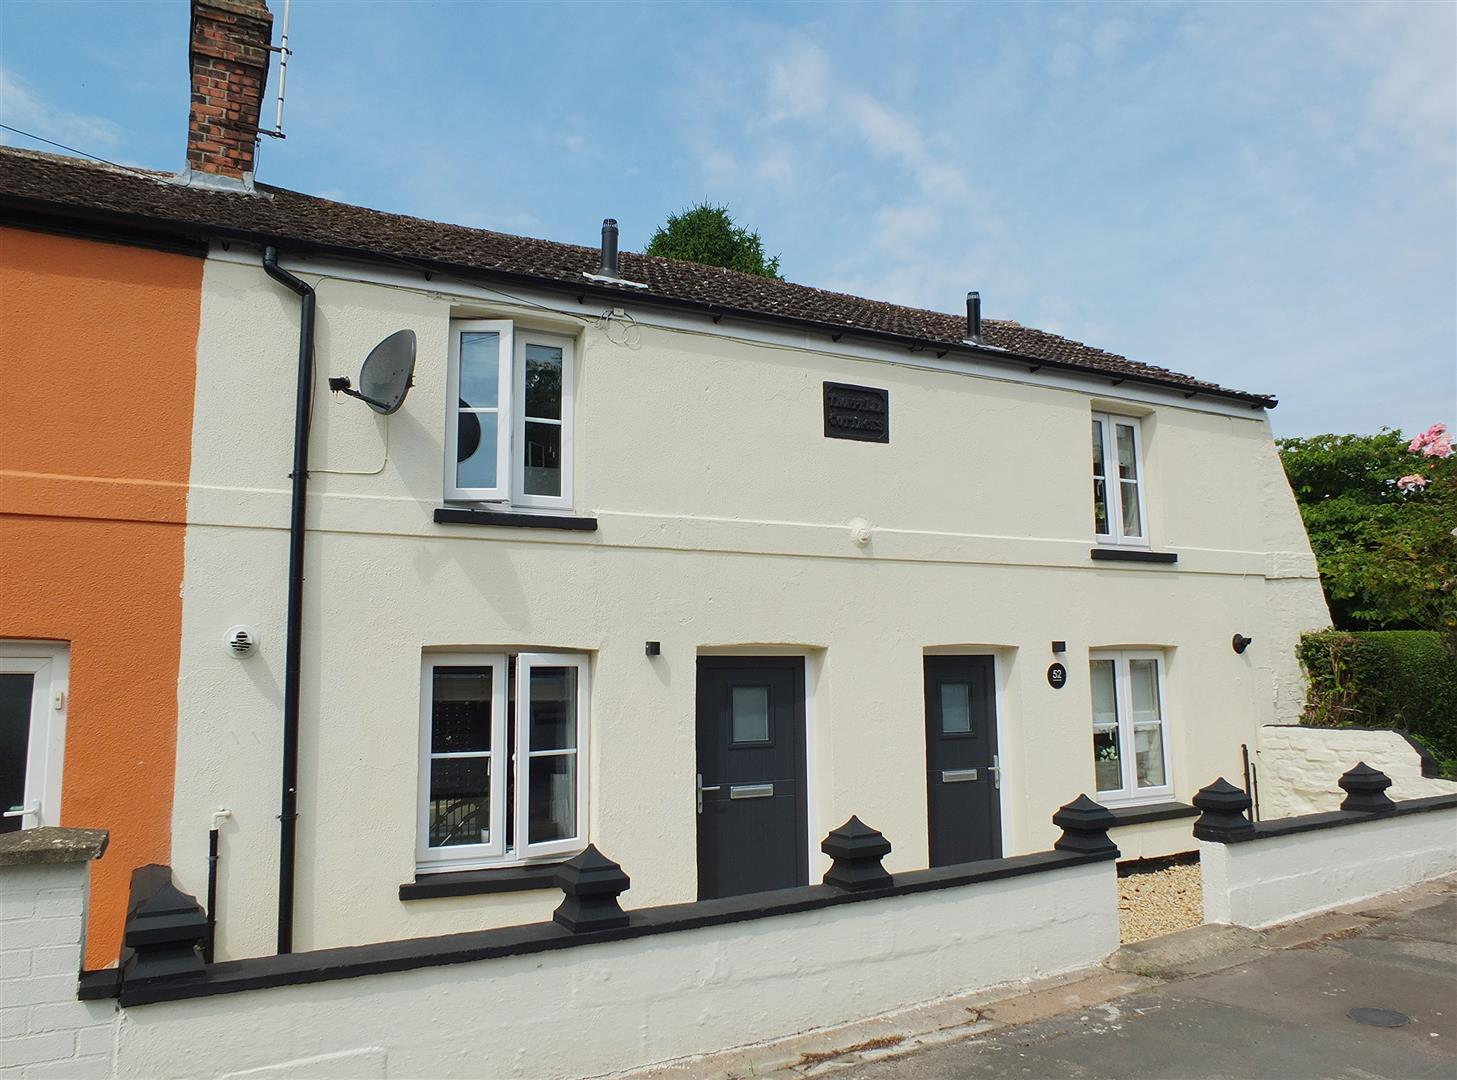 2 bed terraced house for sale in Long Sutton Spalding, PE12 9EA - Property Image 1